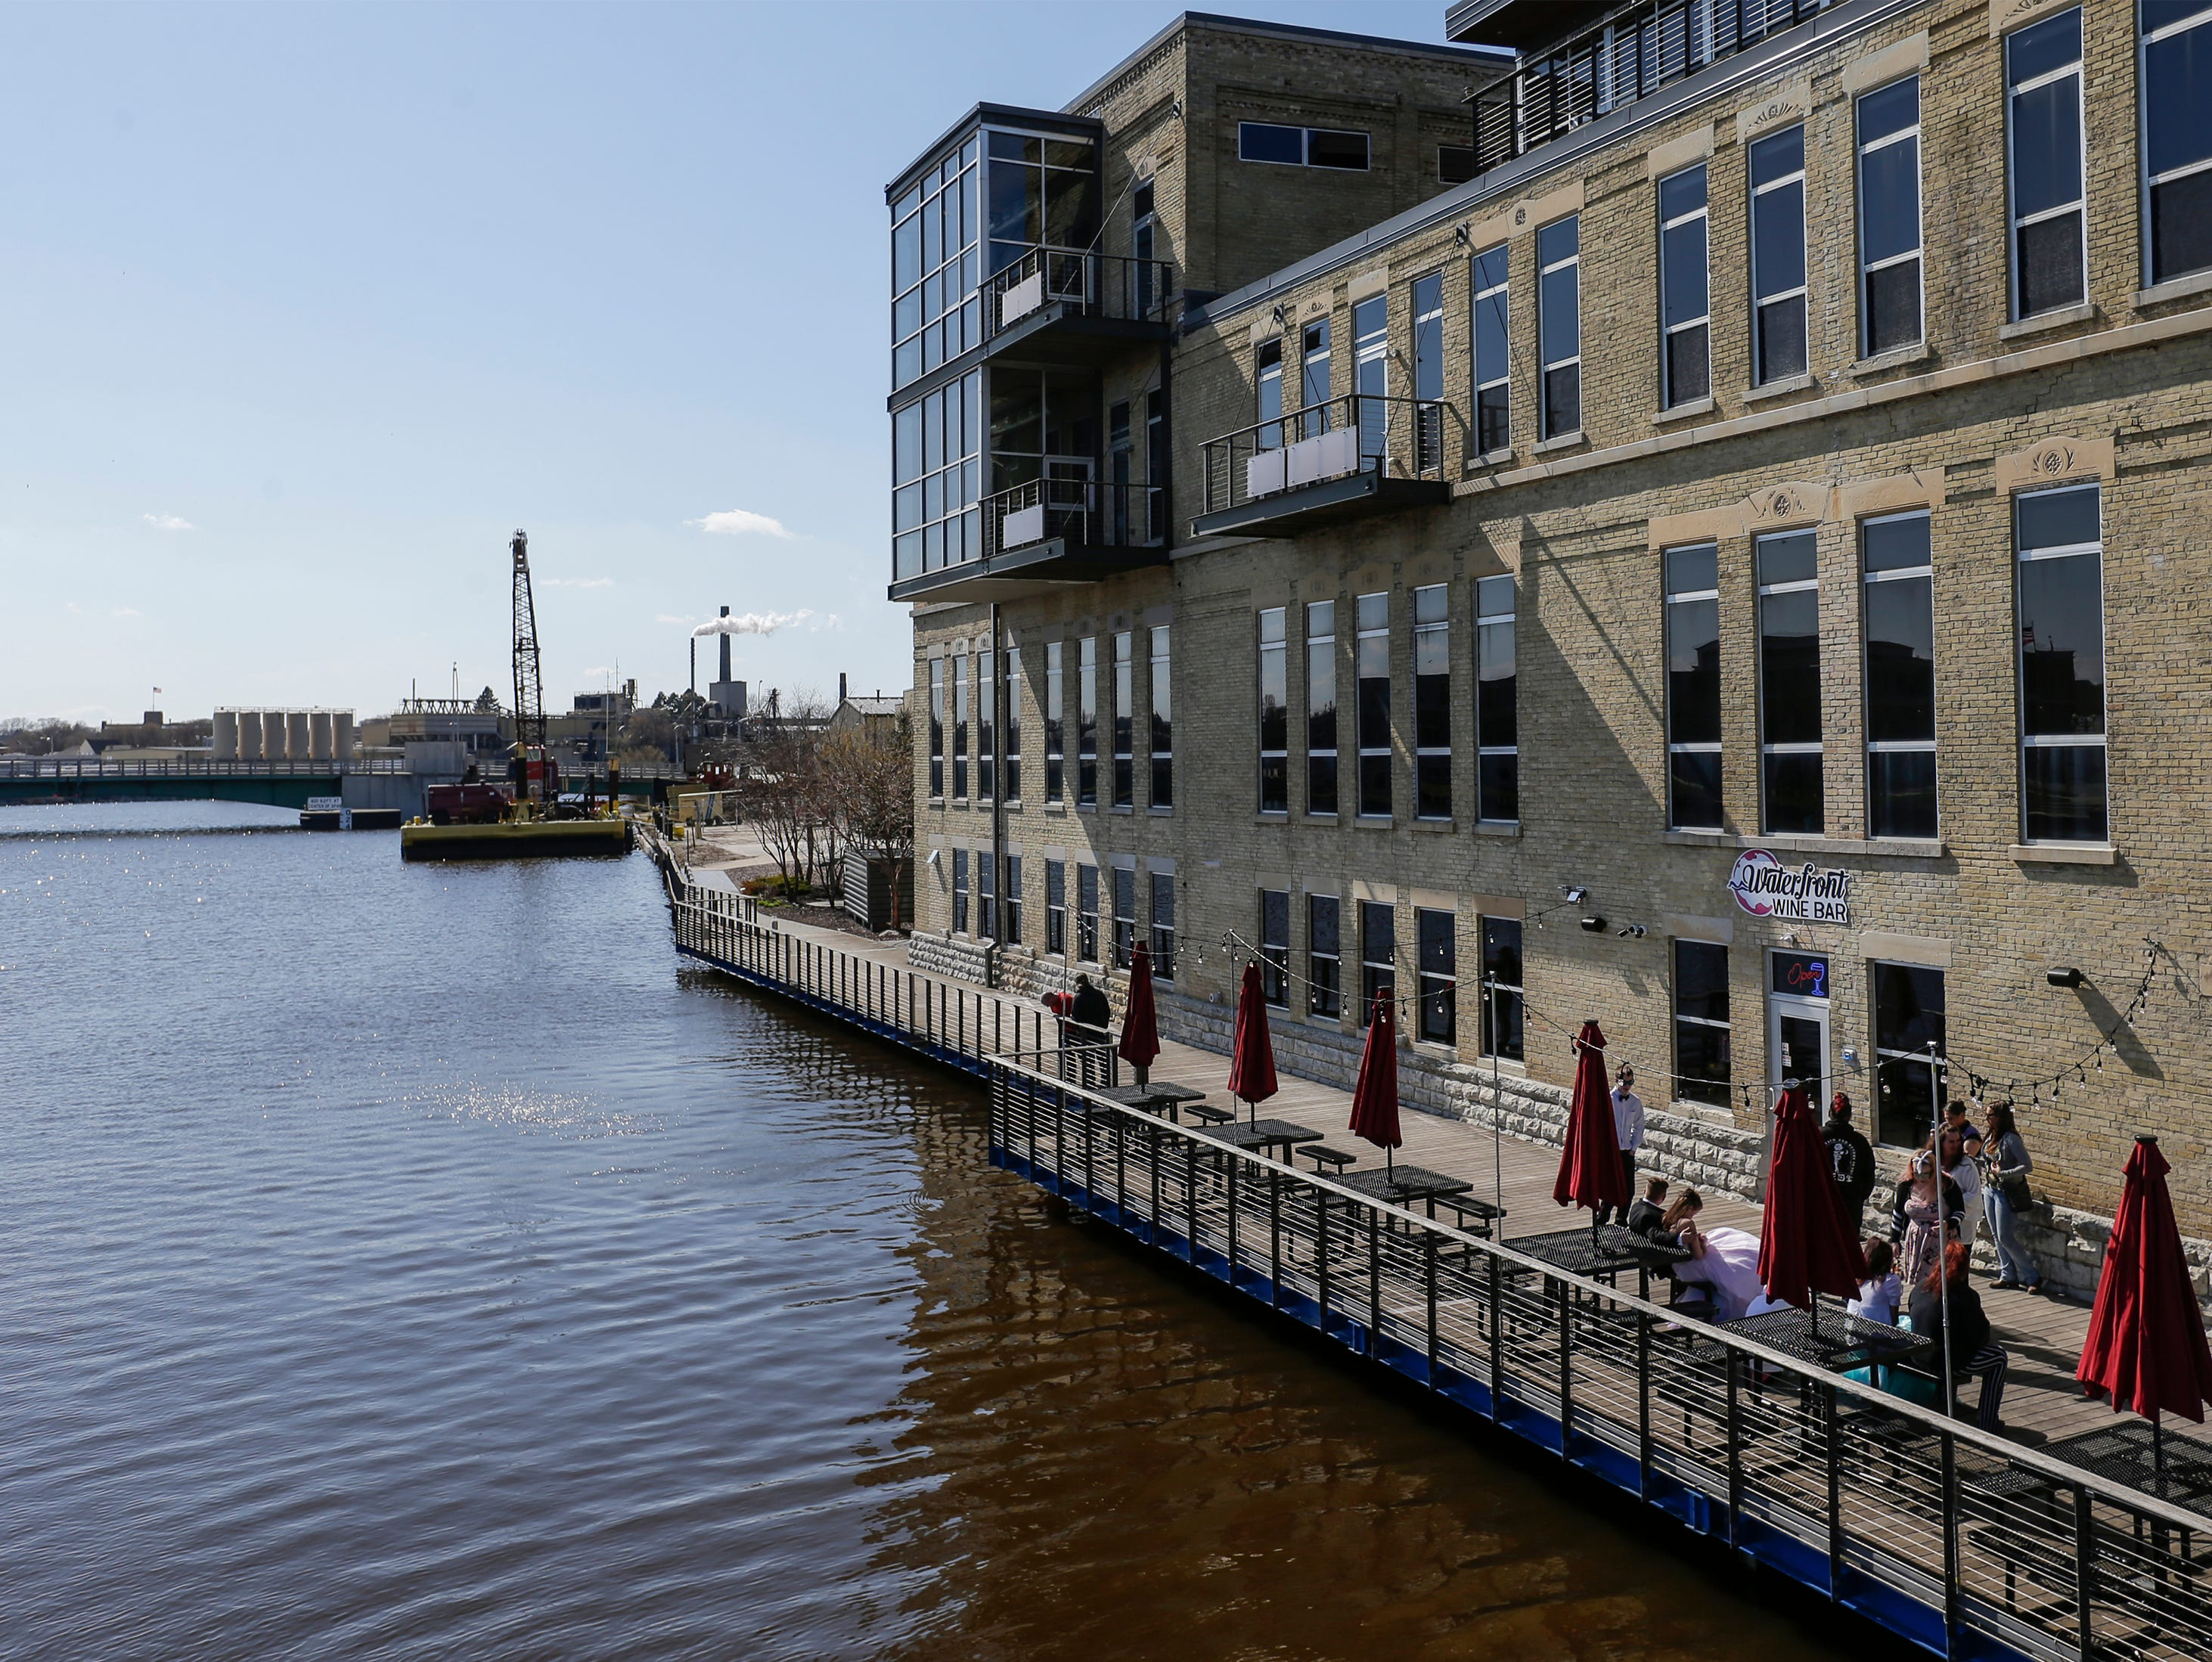 Outdoor seating alongside the Manitowoc River at the Waterfront Wine Bar Saturday, May 4, 2019, in Manitowoc, Wis. Joshua Clark/USA TODAY NETWORK-Wisconsin